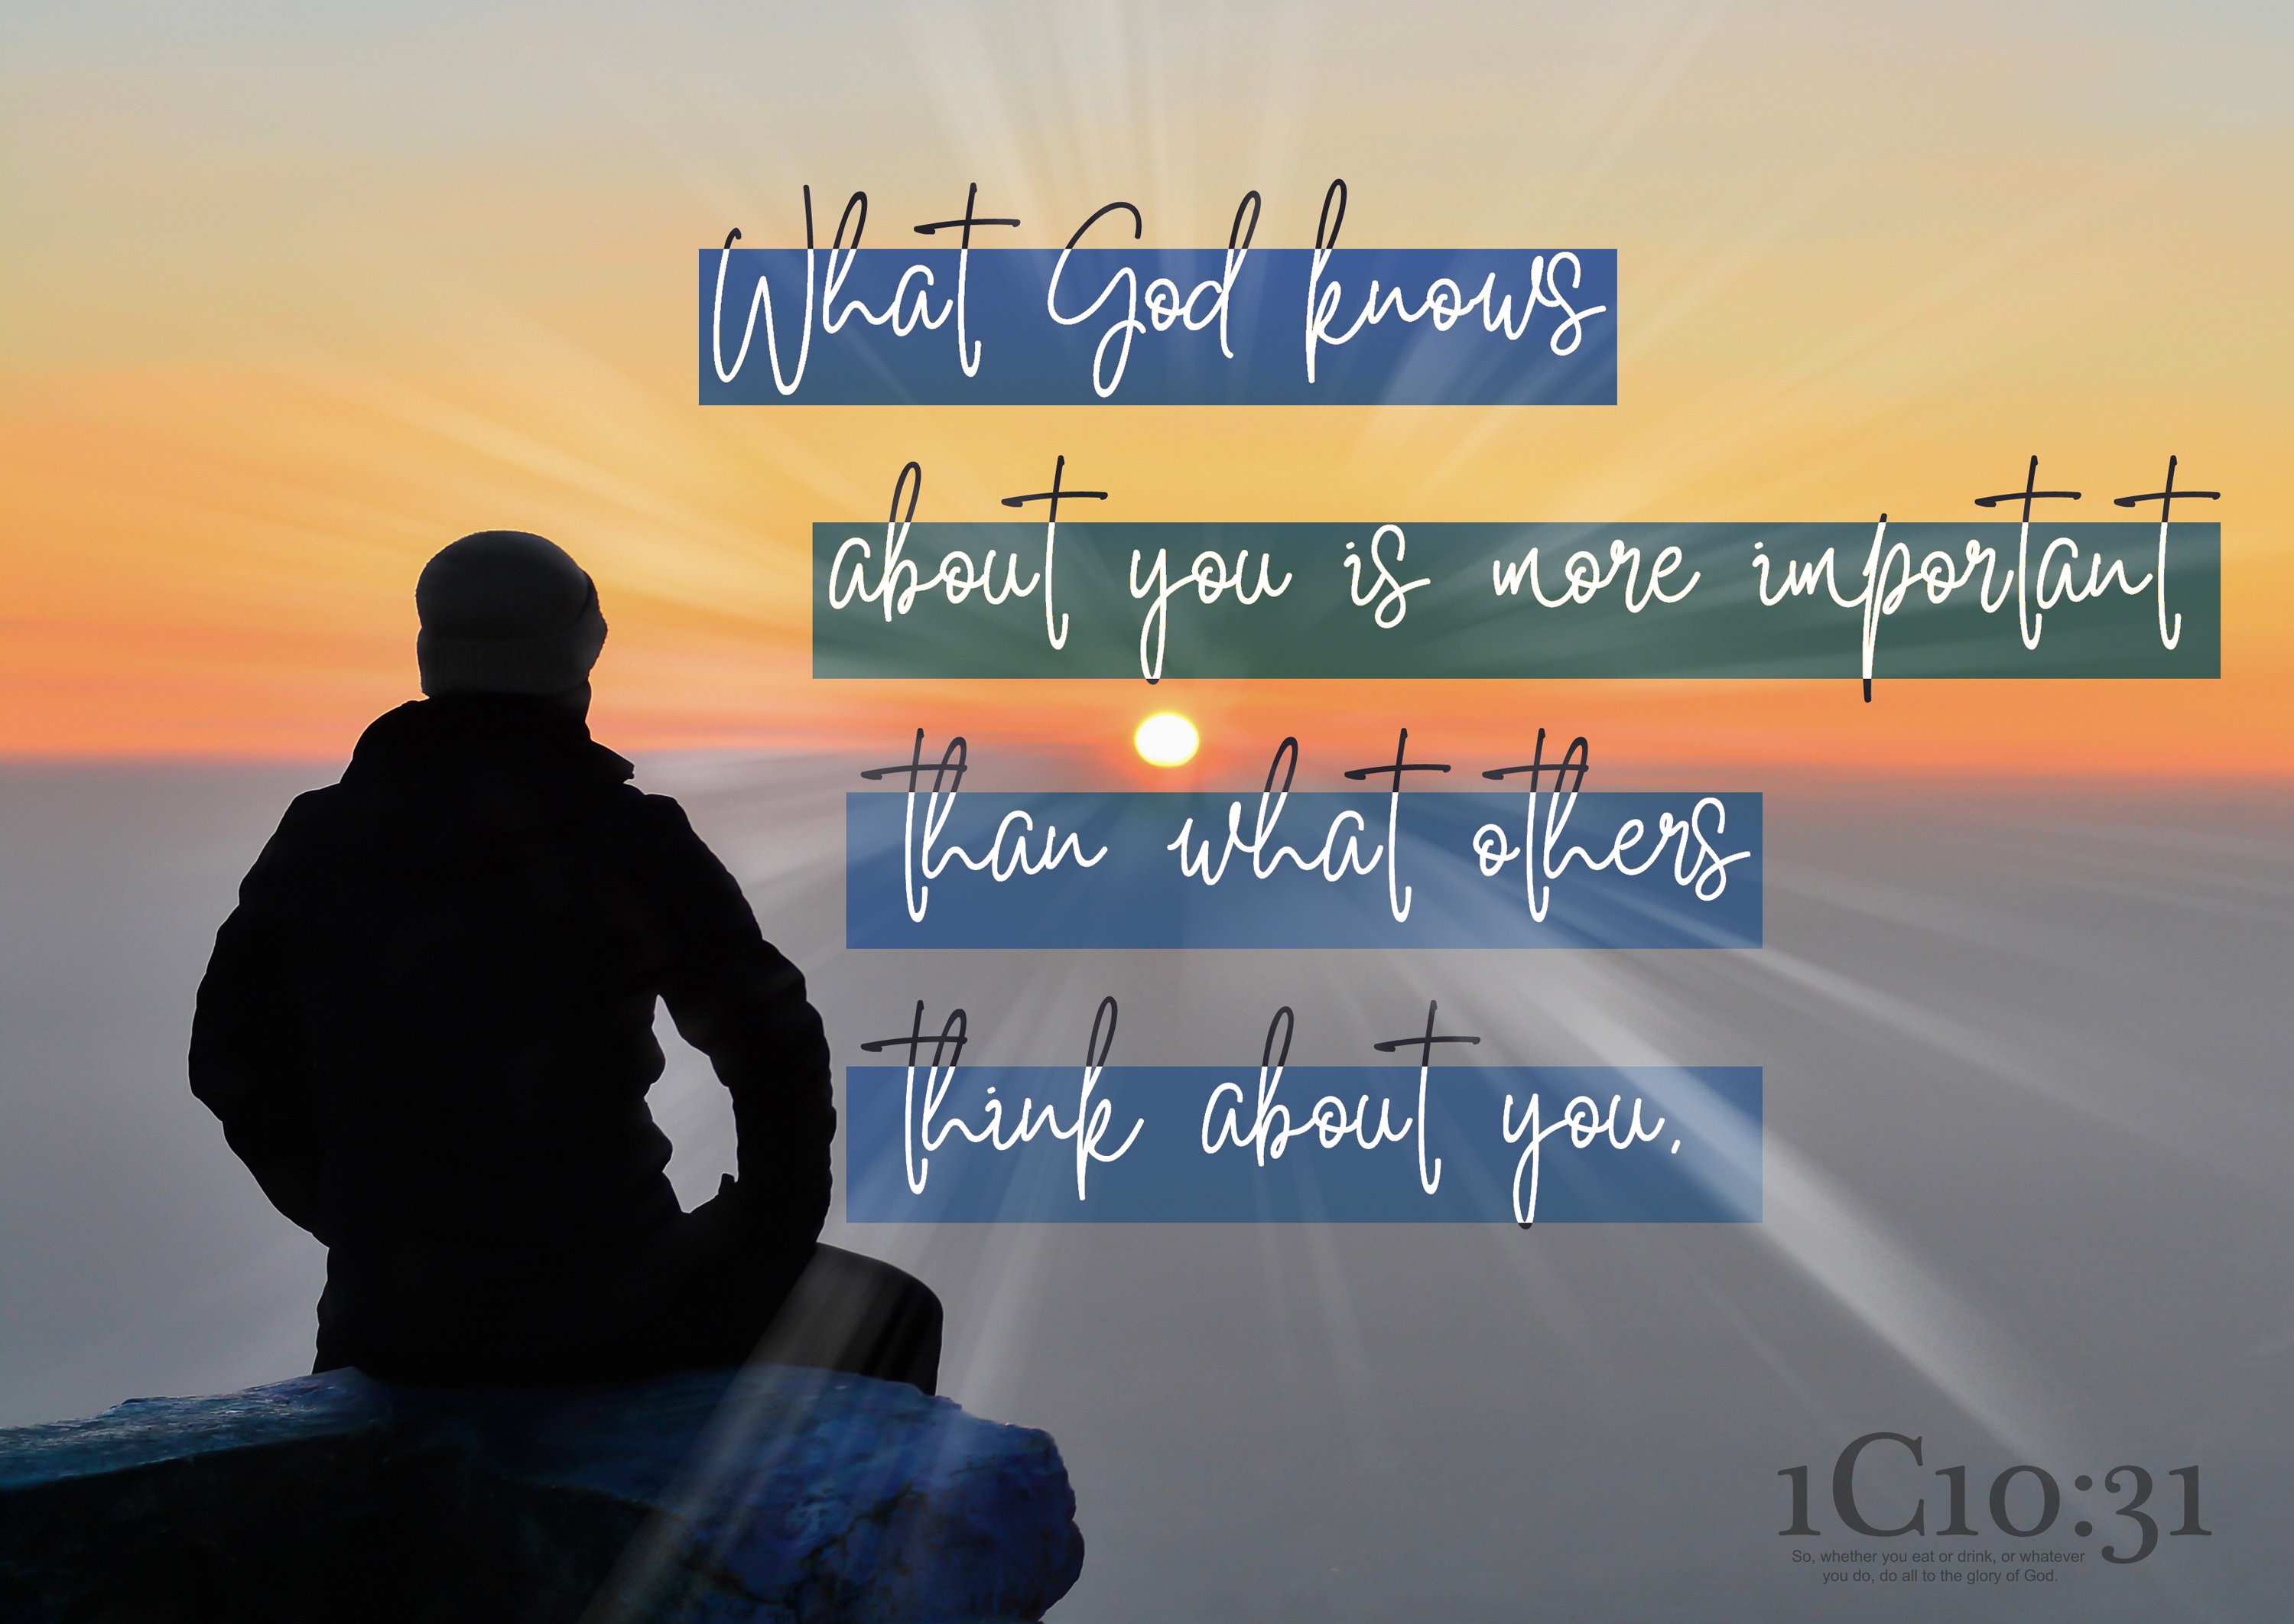 What God knows about you is more important than what others think about you.